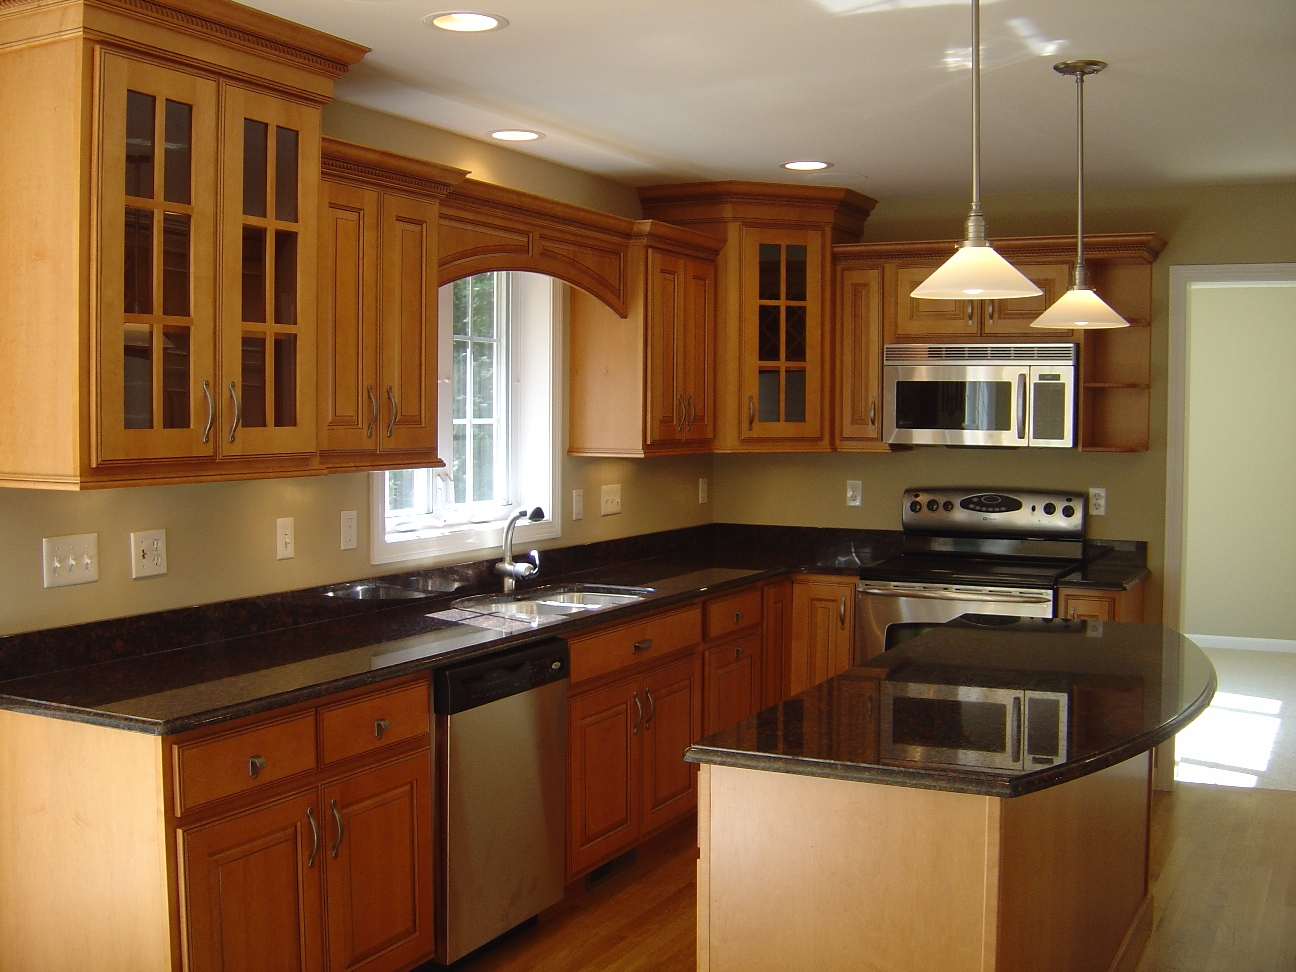 Kitchen designs photos find kitchen designs for Kitchen design ideas photo gallery